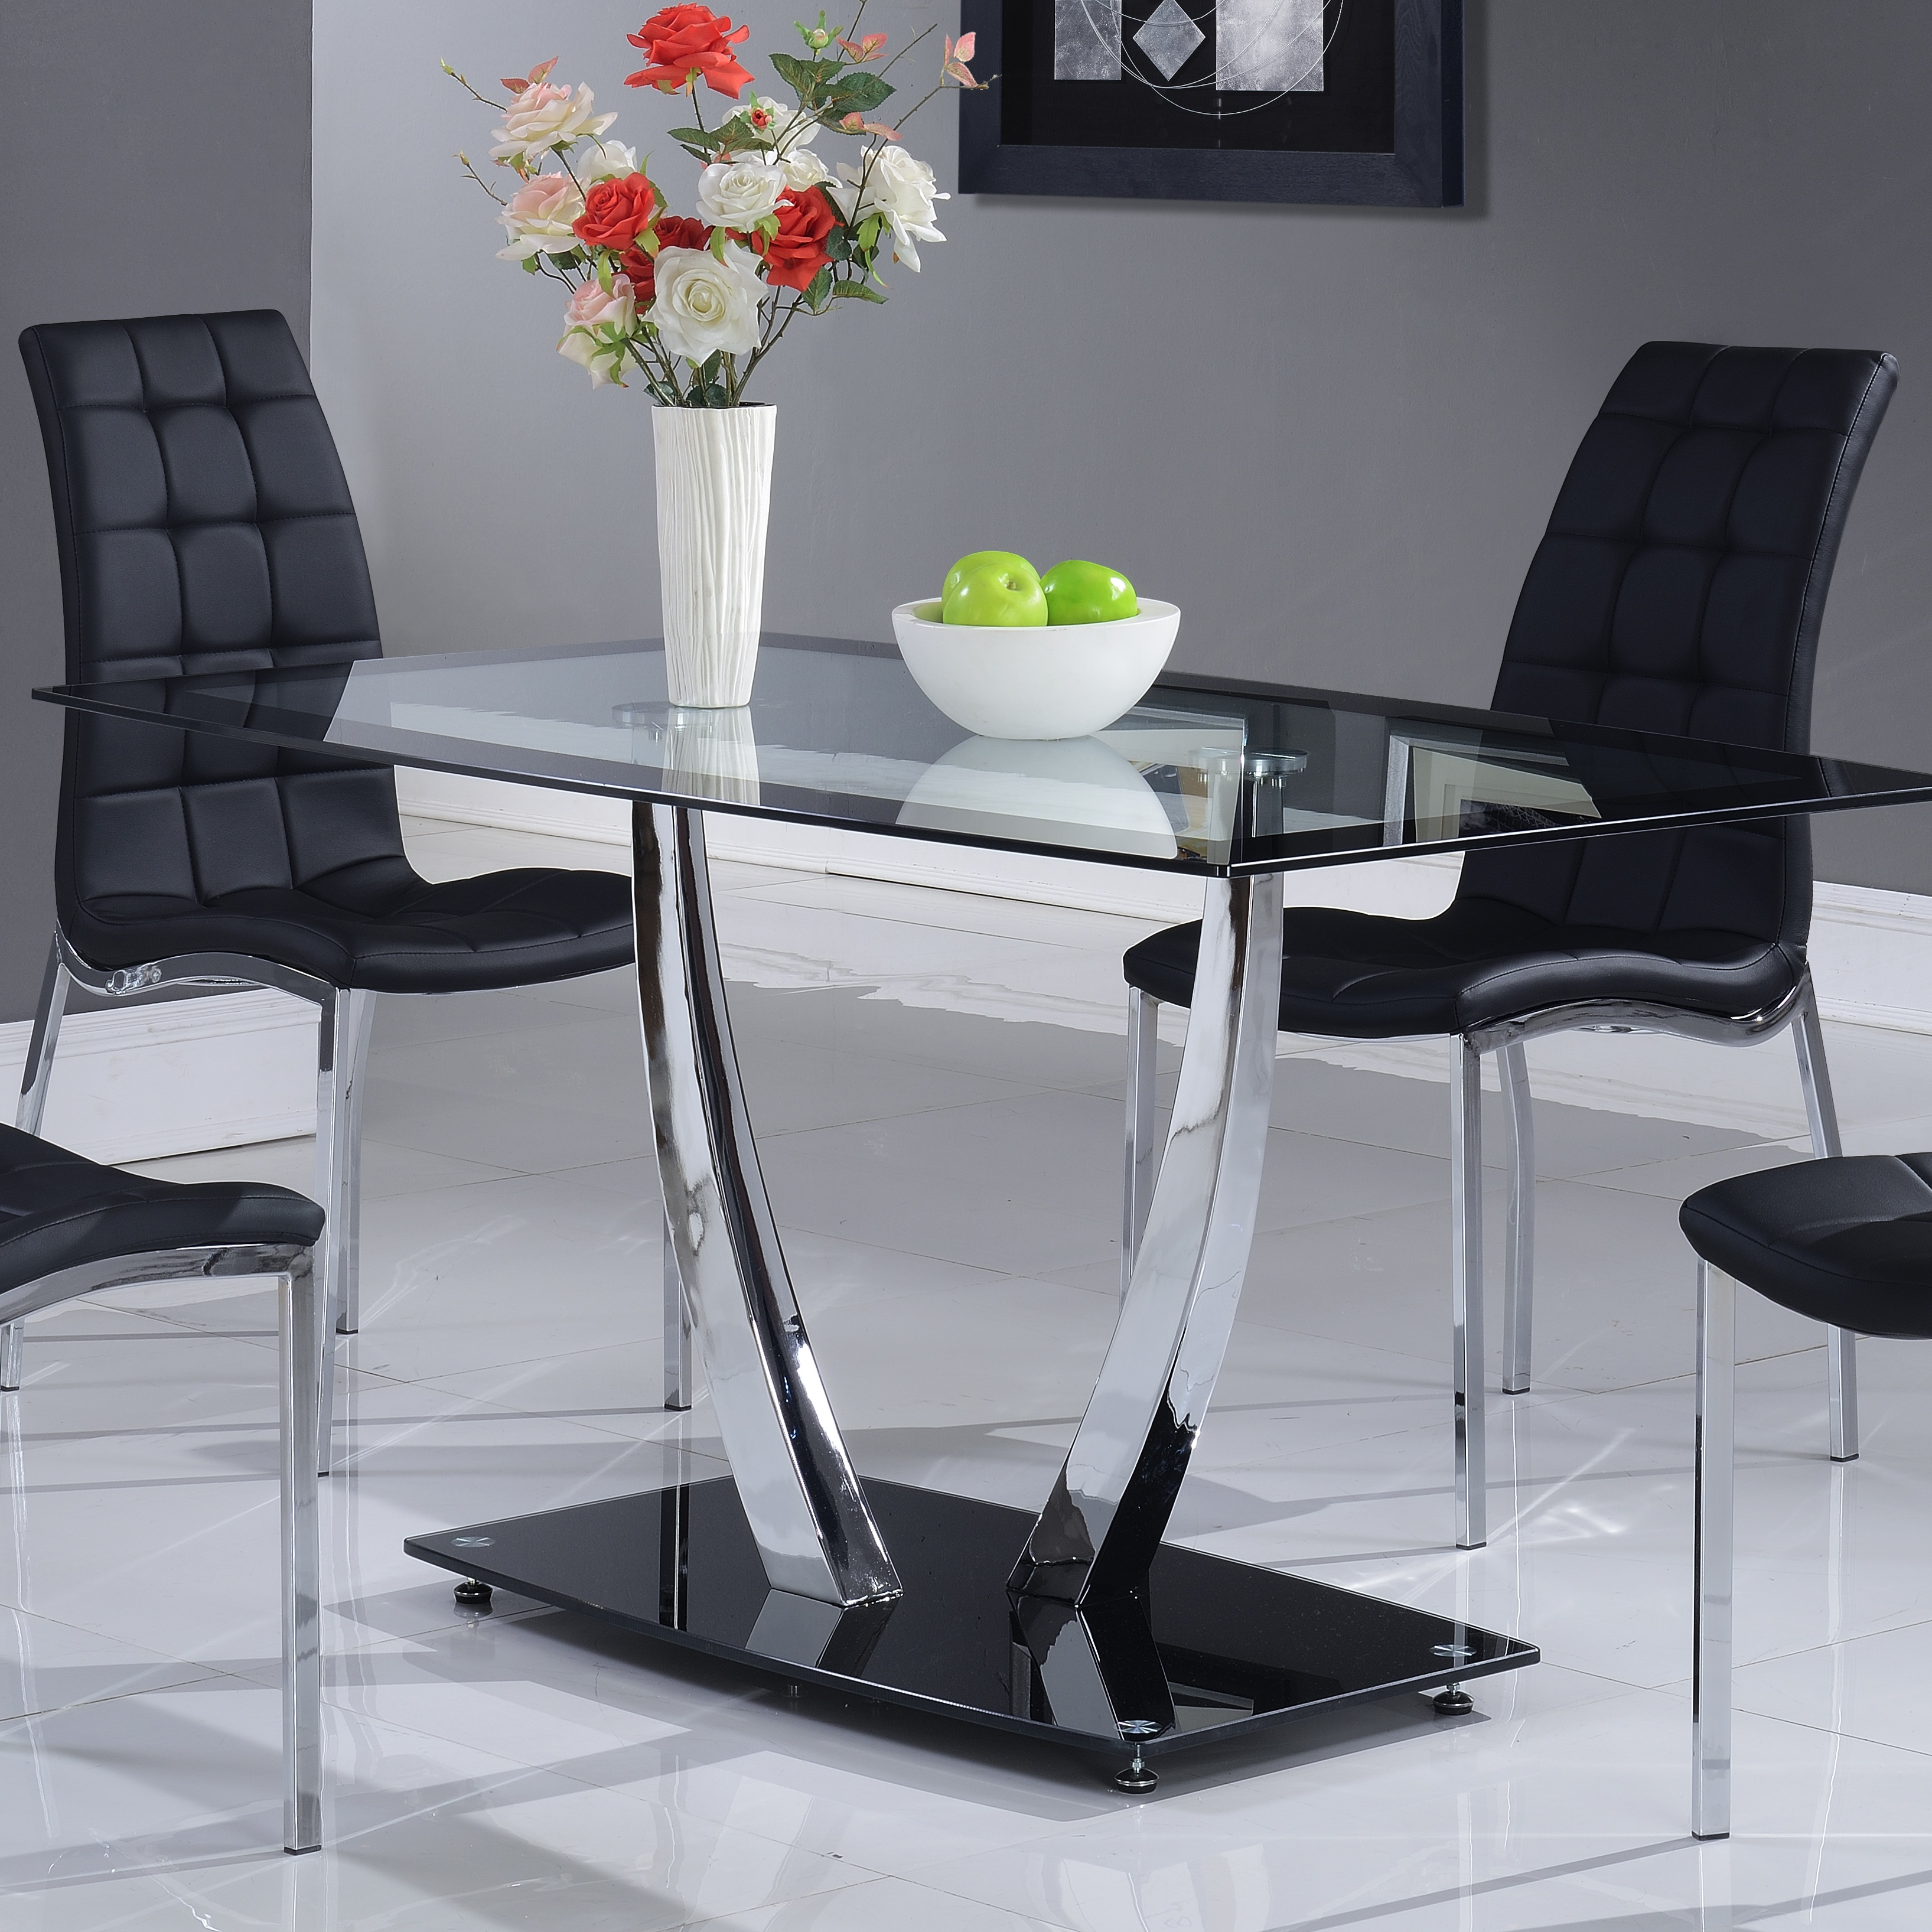 Global Furniture Glass Dining Table With Black Trim And Chrome Legs 60x36x30 Inch Black